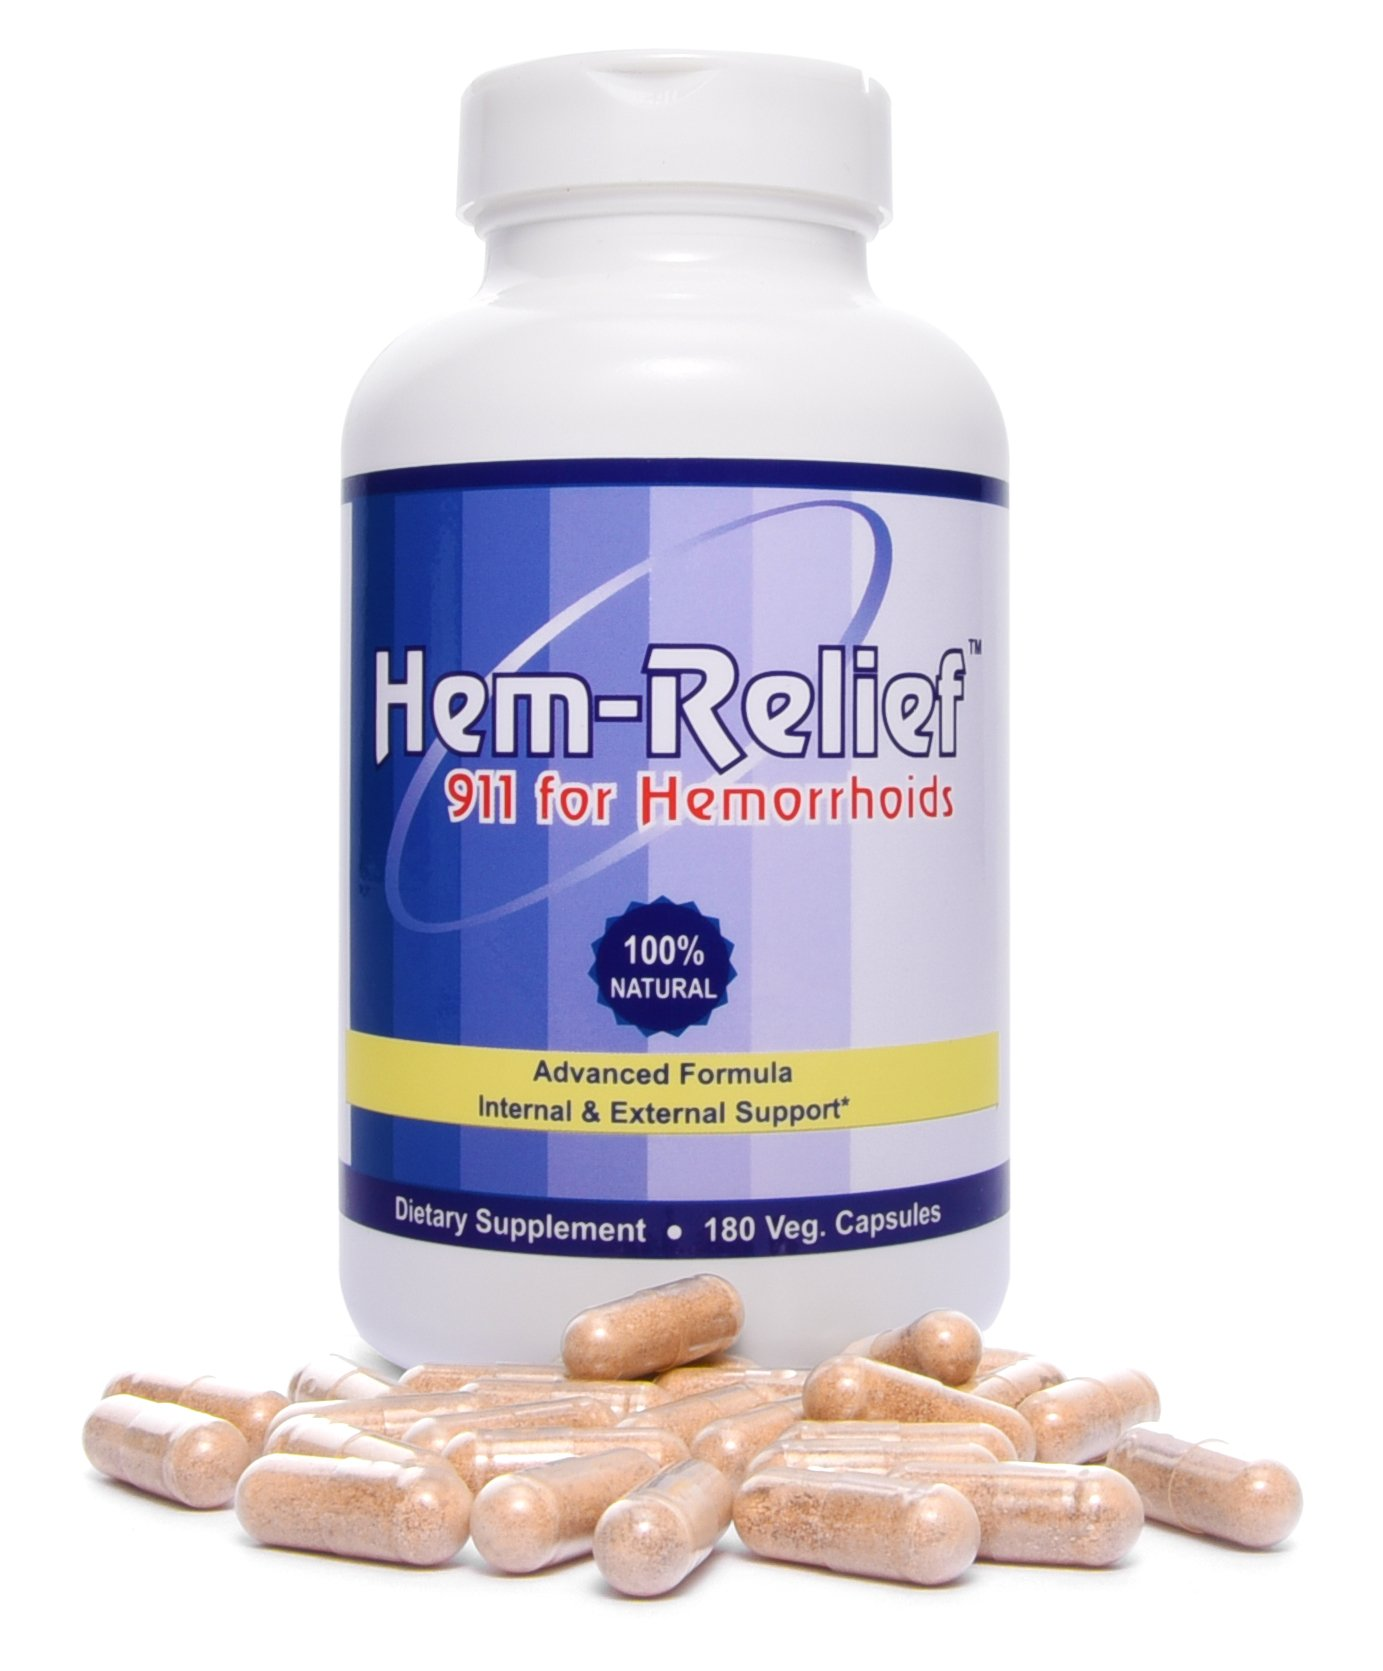 Western Herbal and Nutrition | Hem-Relief 911 for Hemorrhoids | 100% Natural Formula | Alleviate Pain, Itching, Burning | Fast Acting Supplement | Internal & External Treatment | 180 Vegetarian Caps by Hem Relief